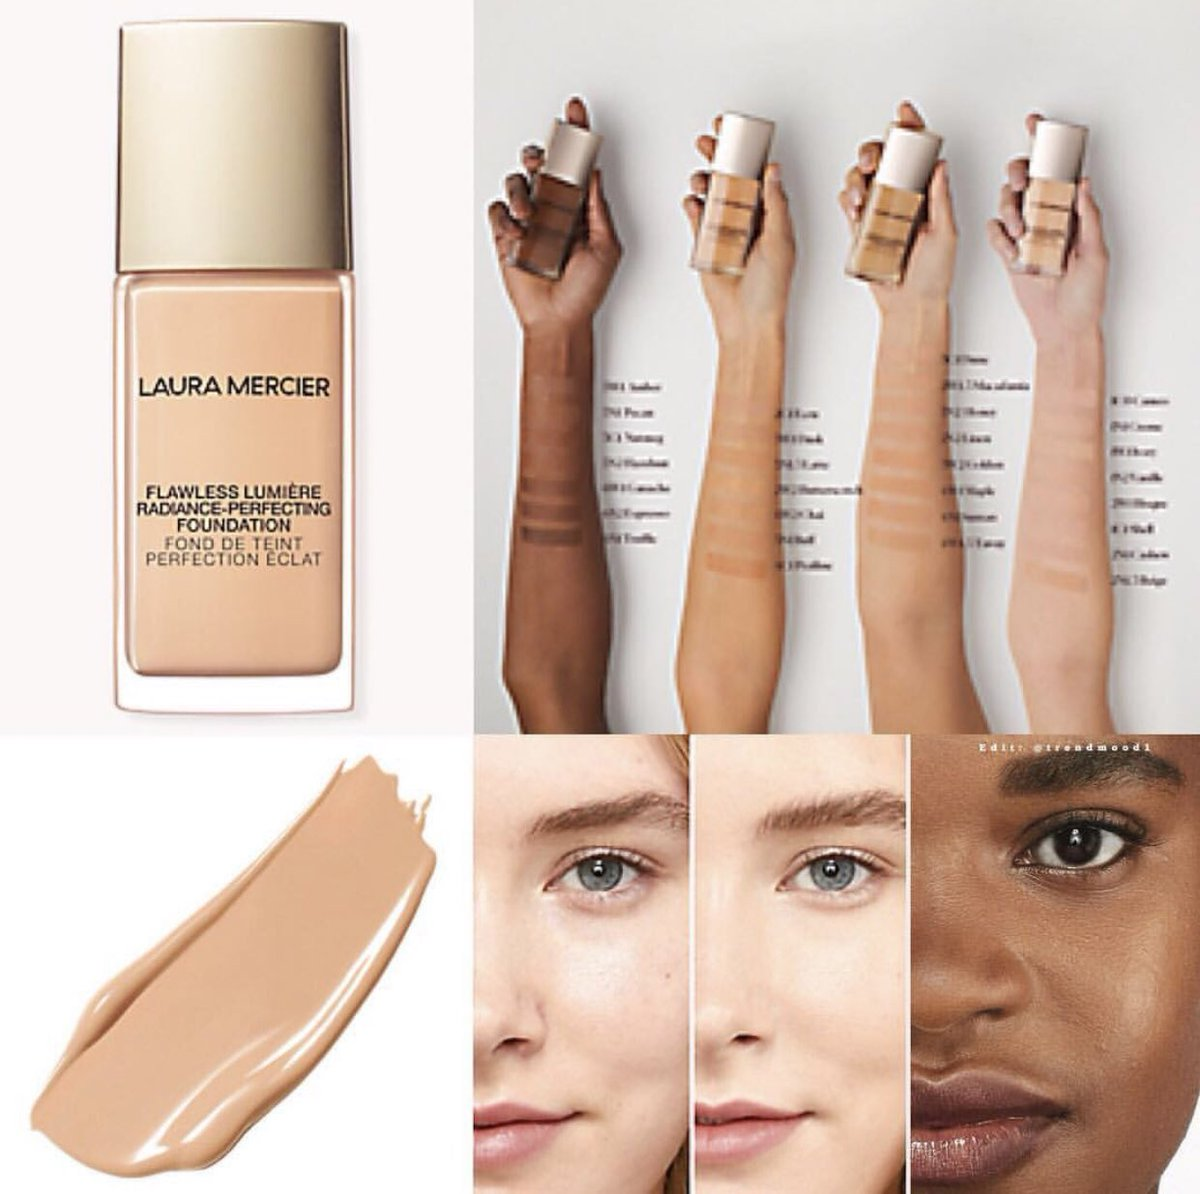 Trendmood Su Twitter Available Now Link Https T Co Mh0thi5wi4 O M G Just Dropped Online Lauramercier New Flawless Lumiere Radiance Perfecting Foundation Captures Perfect Lighting In A Bottle So